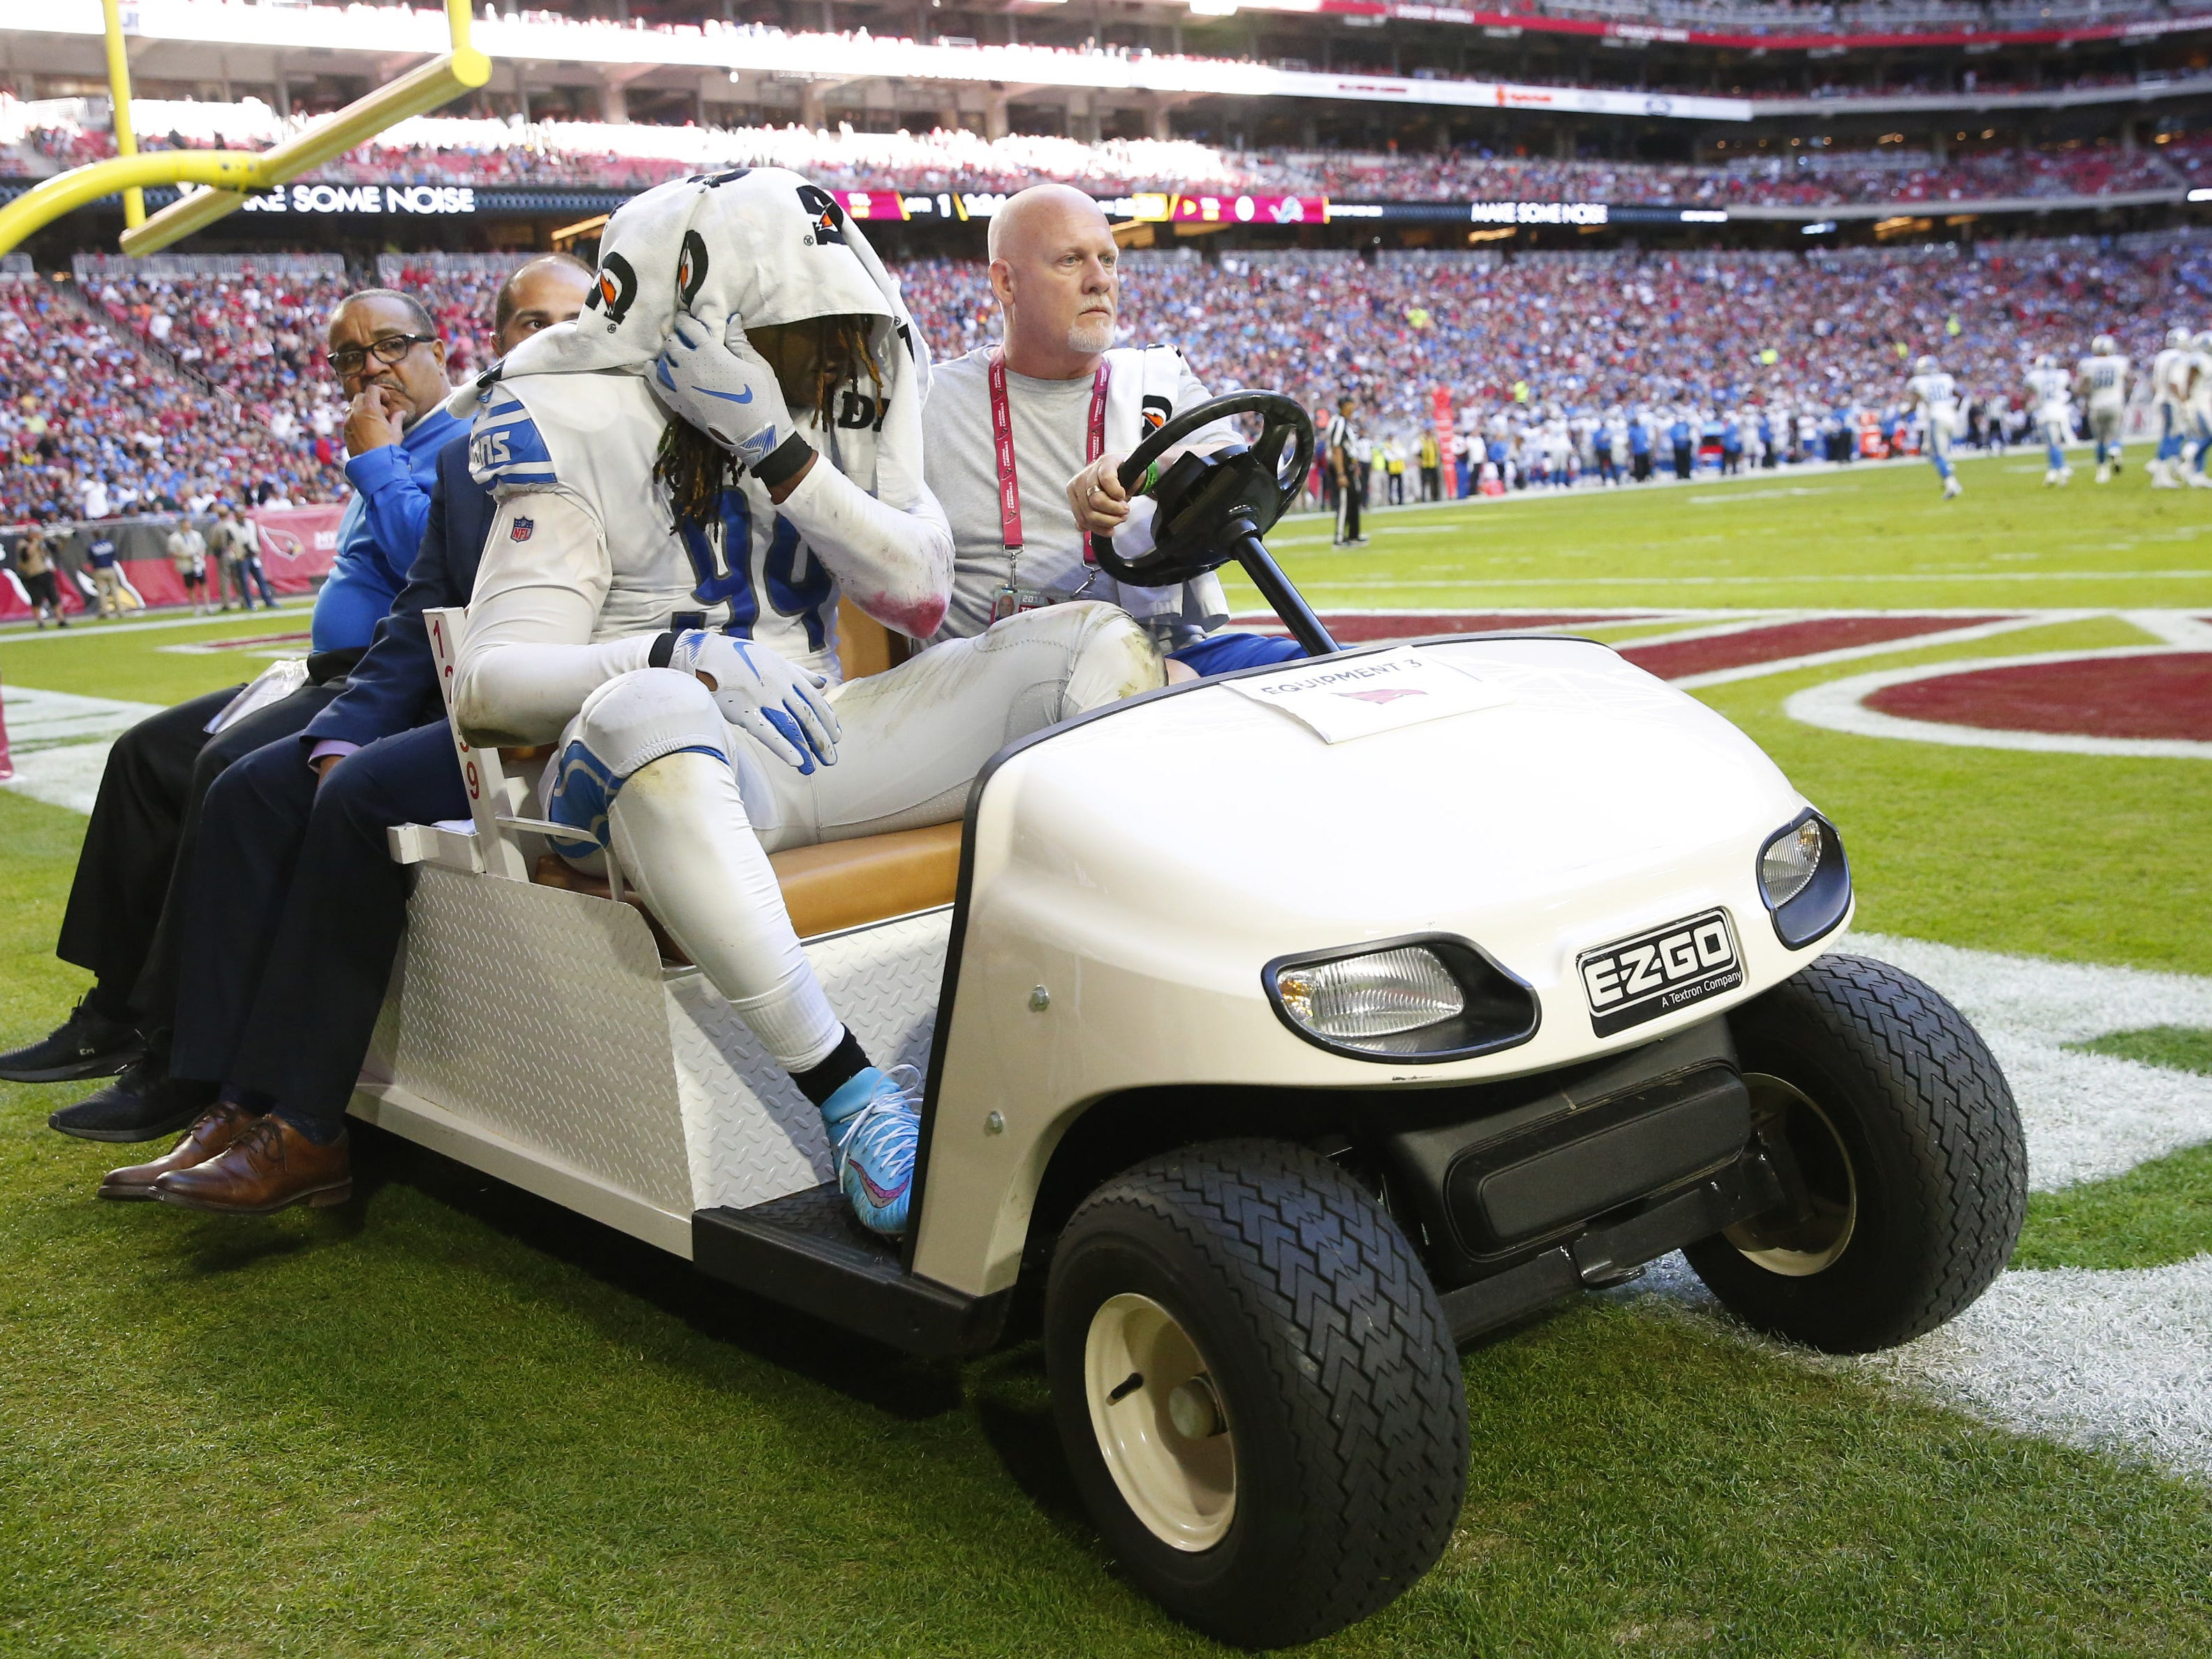 Detroit Lions defensive end Ezekiel Ansah (94) is carted off the field after an injury against the Arizona Cardinals during the second half in Glendale, Ariz. December 9.